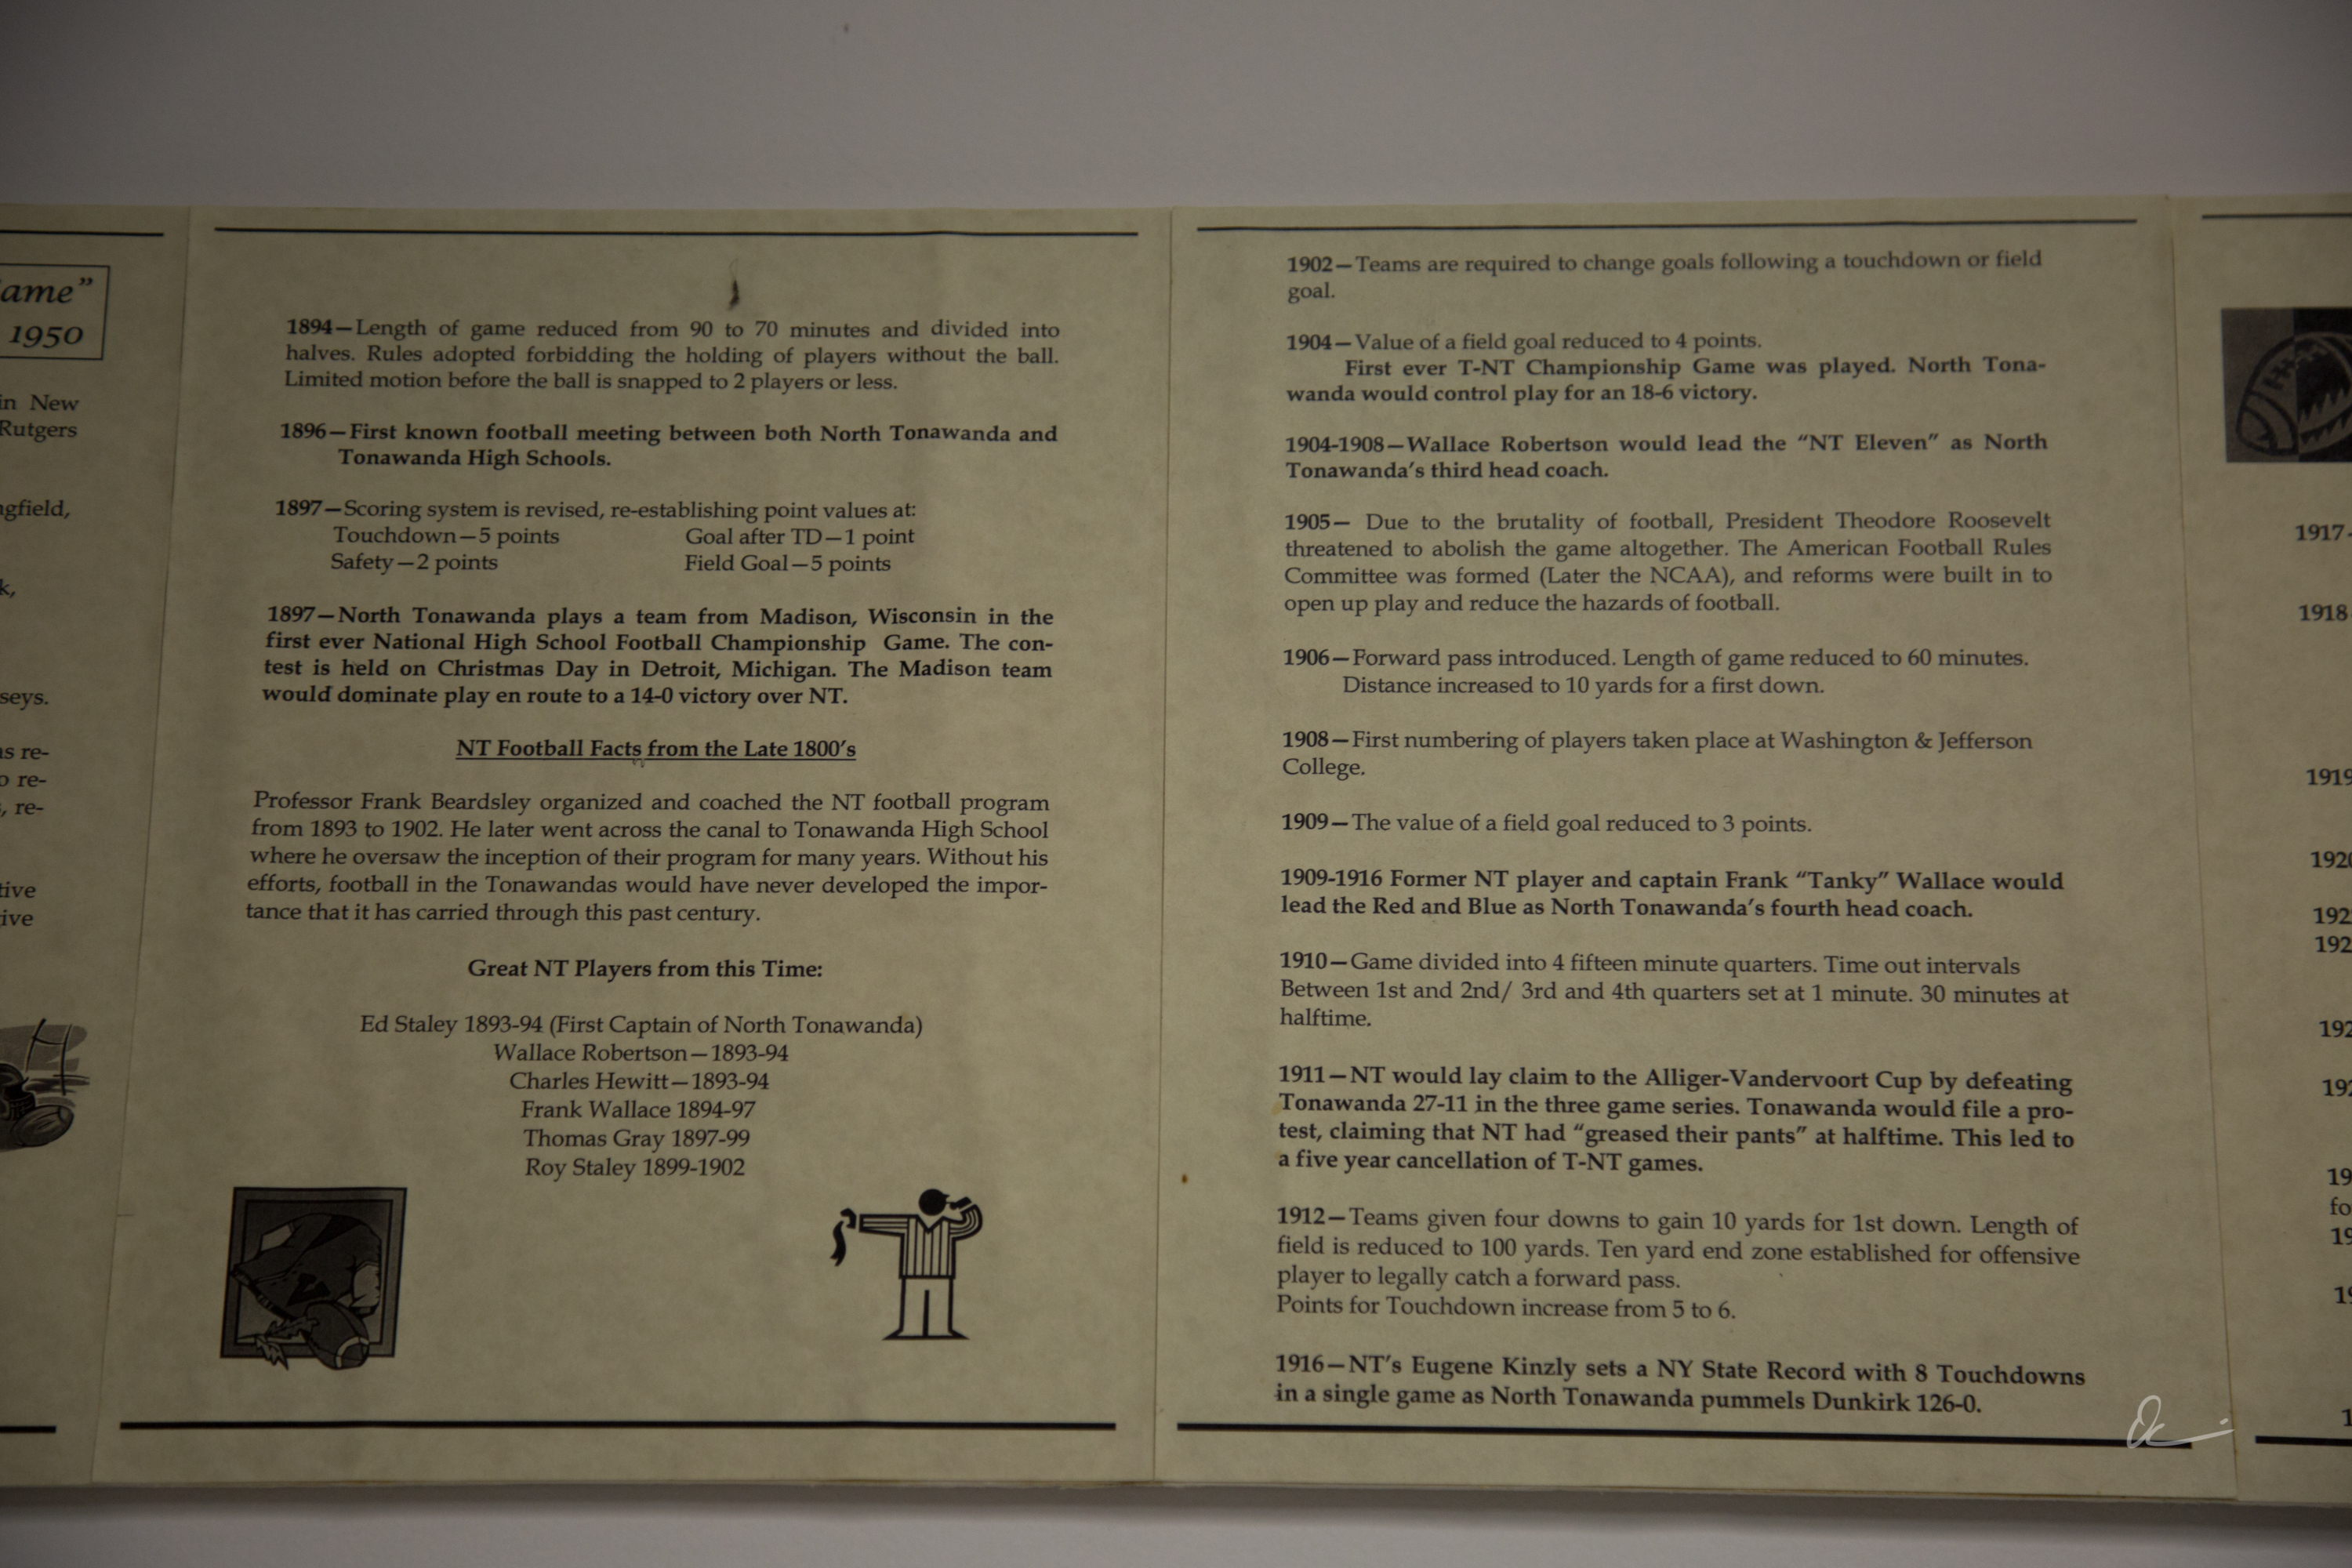 How Rule Changes Have Shaped the Game, display at the North Tonawanda Football Hall of Fame (2017) 2.jpg